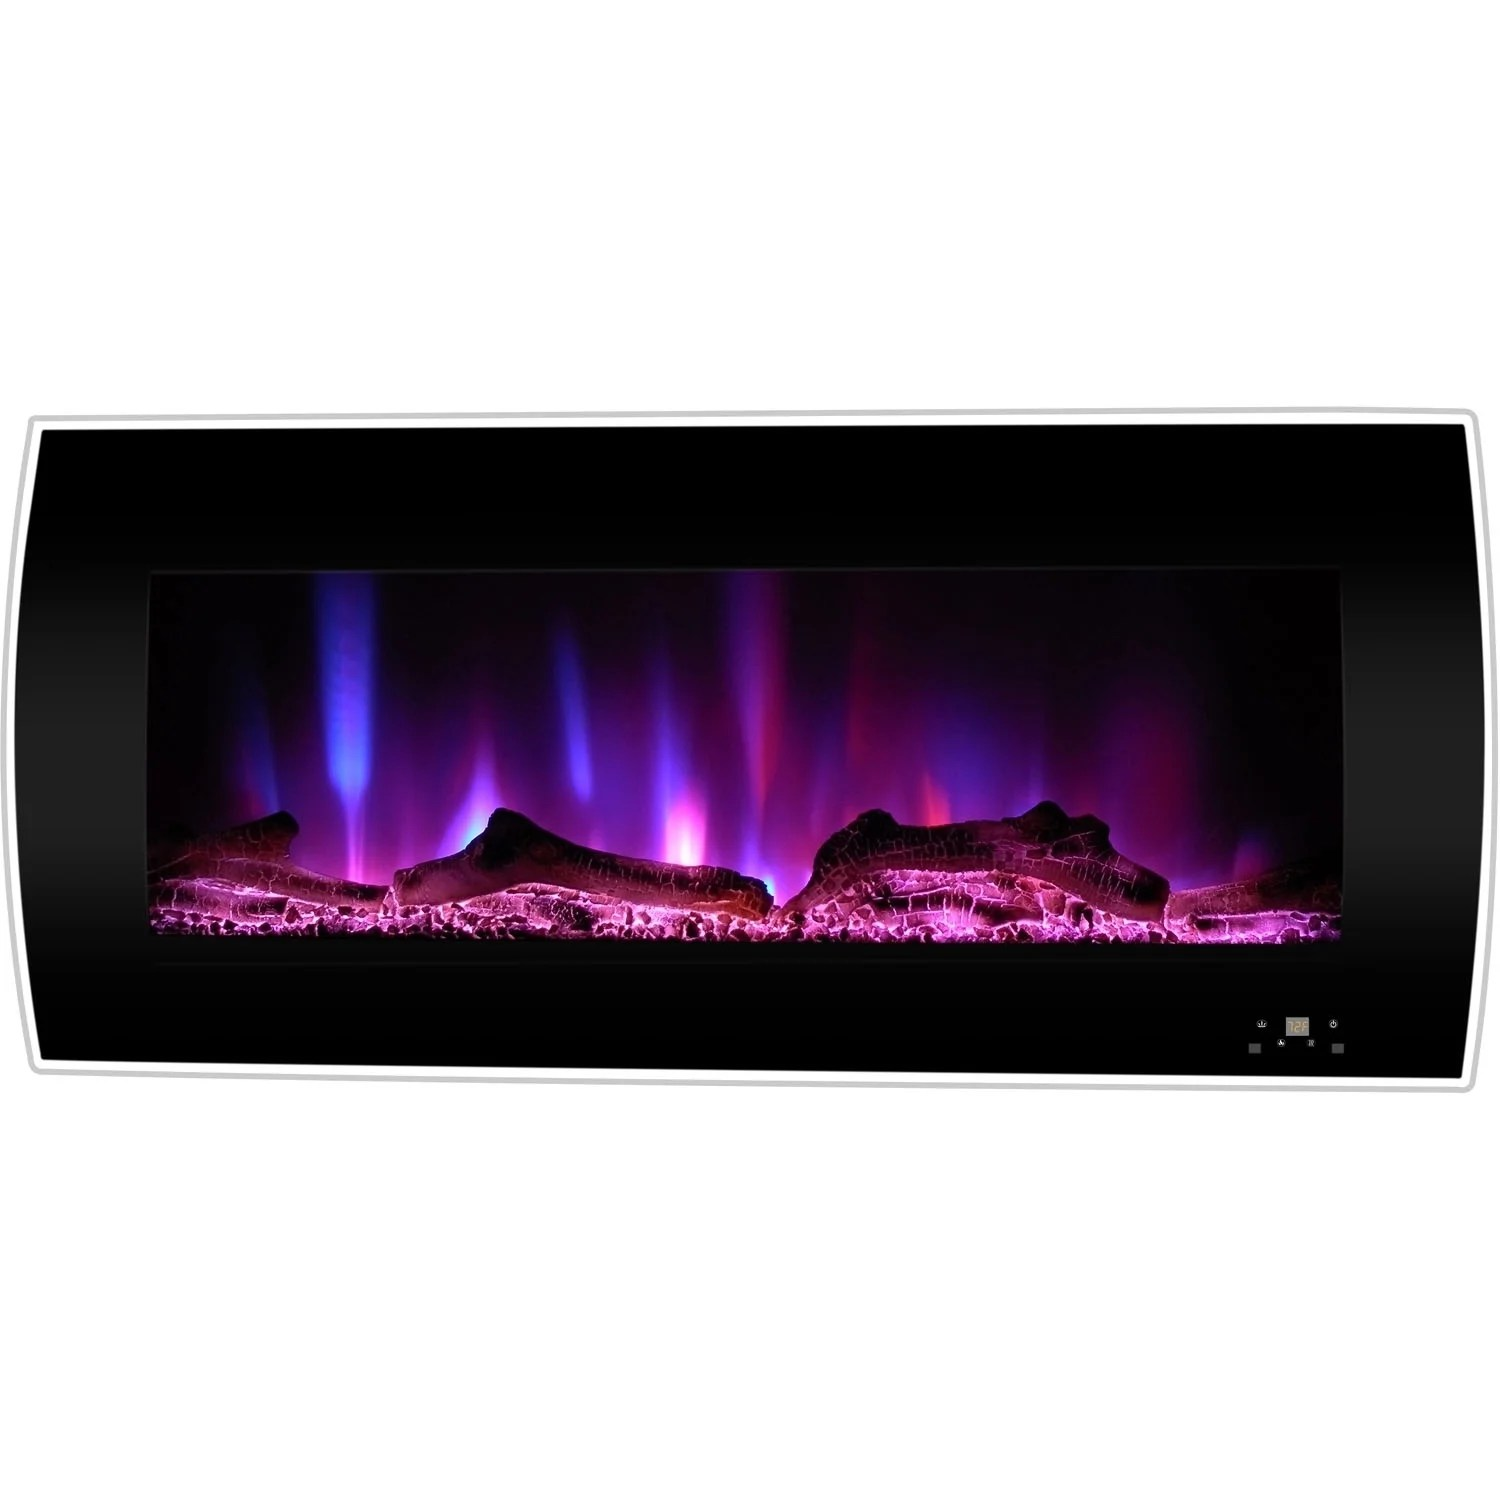 Curved Electric Fireplace Cambridge 42 In Curved Wall Mount Electric Fireplace Heater In Black